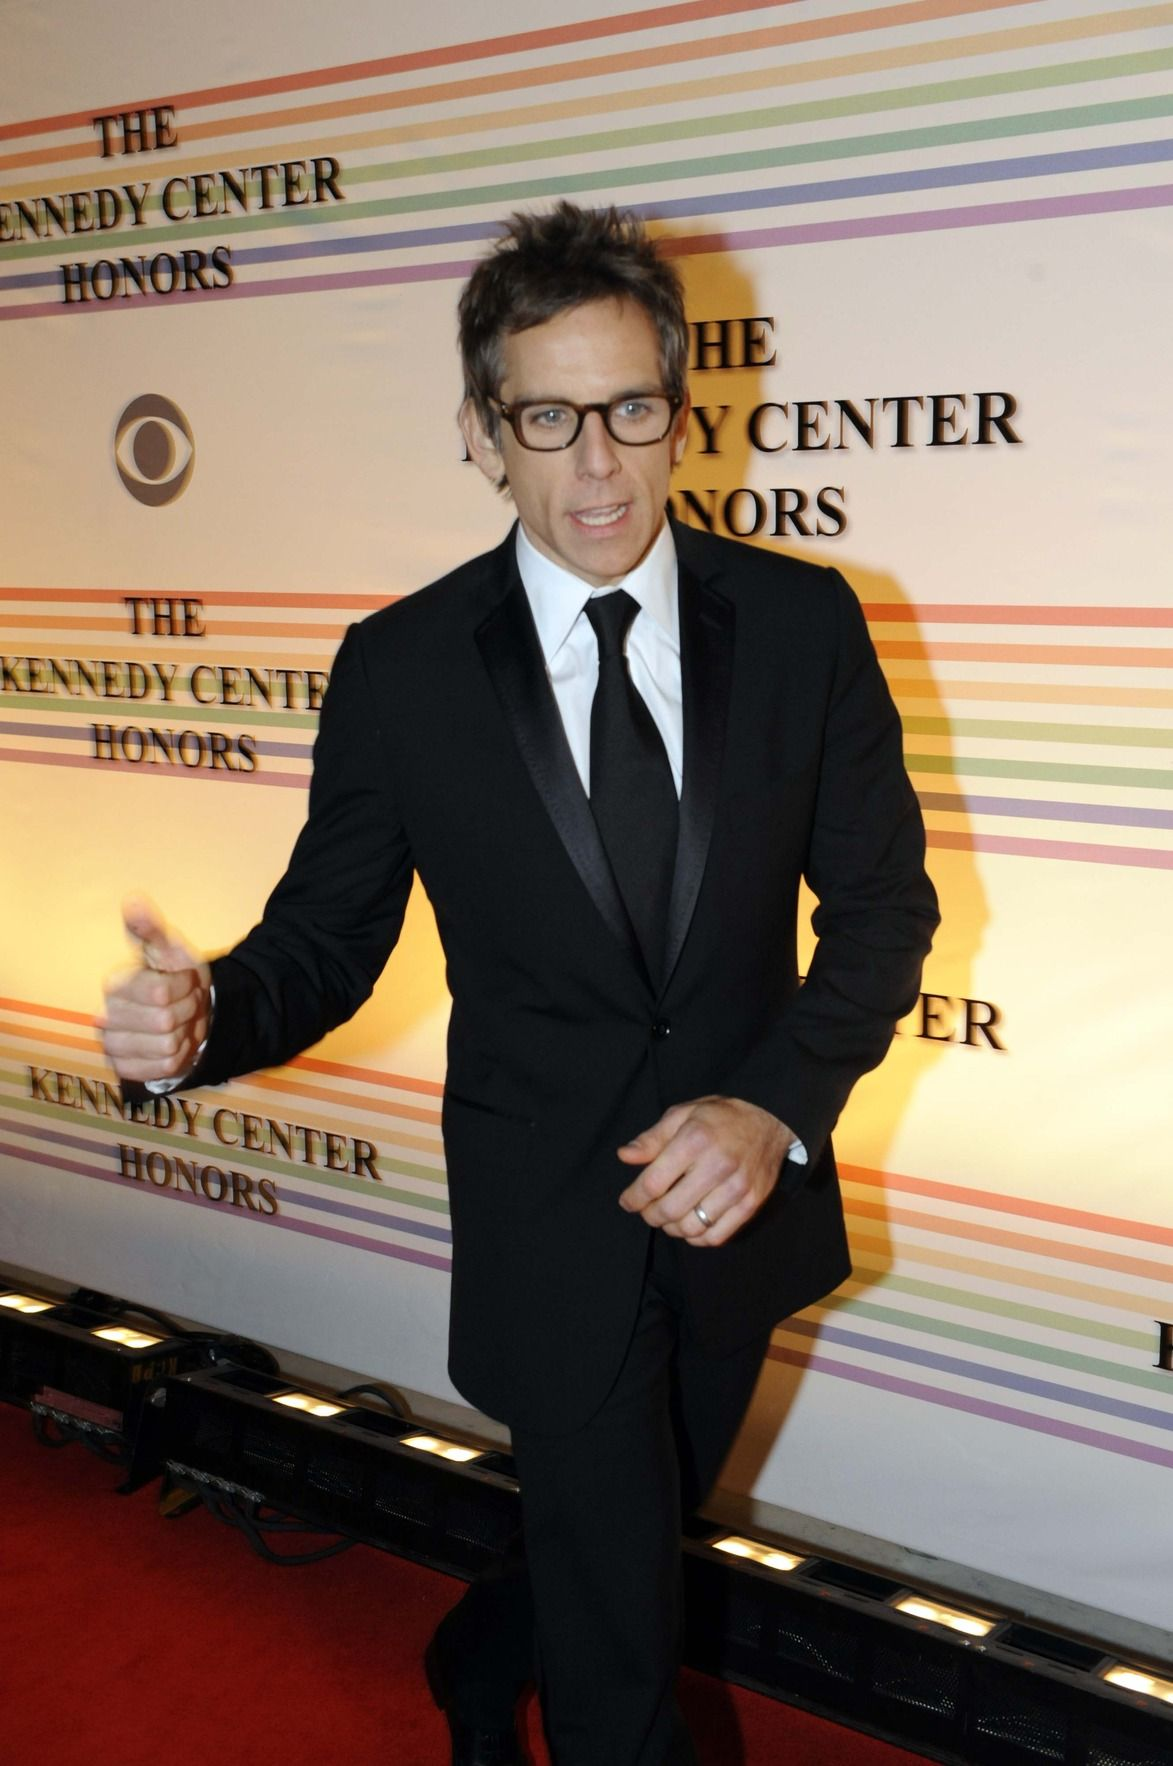 Gallery More Photos Of The Kennedy Center Honors Gala